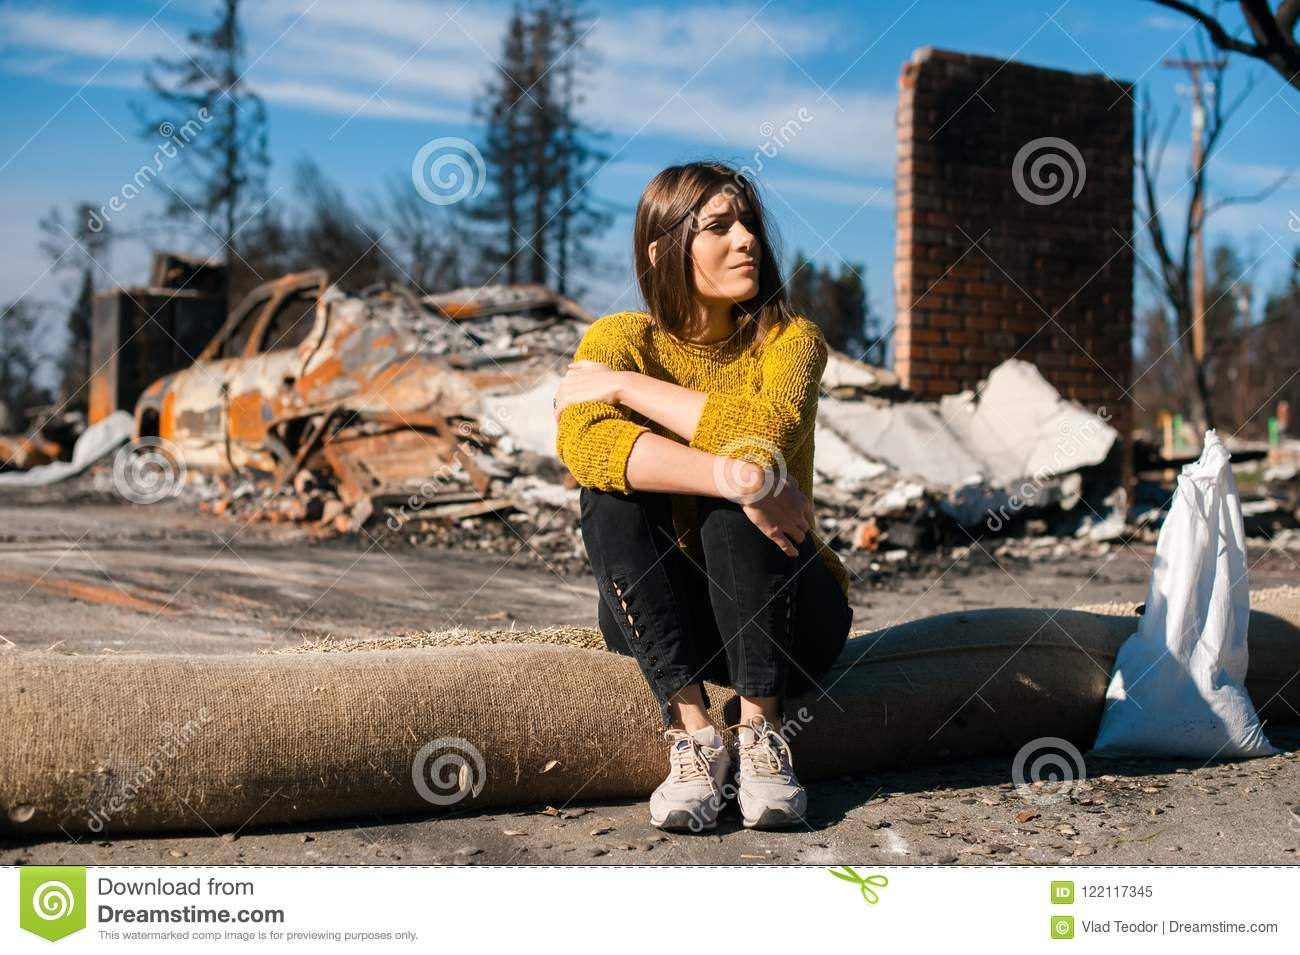 Woman at burned ruined house and yard, after fire disaster